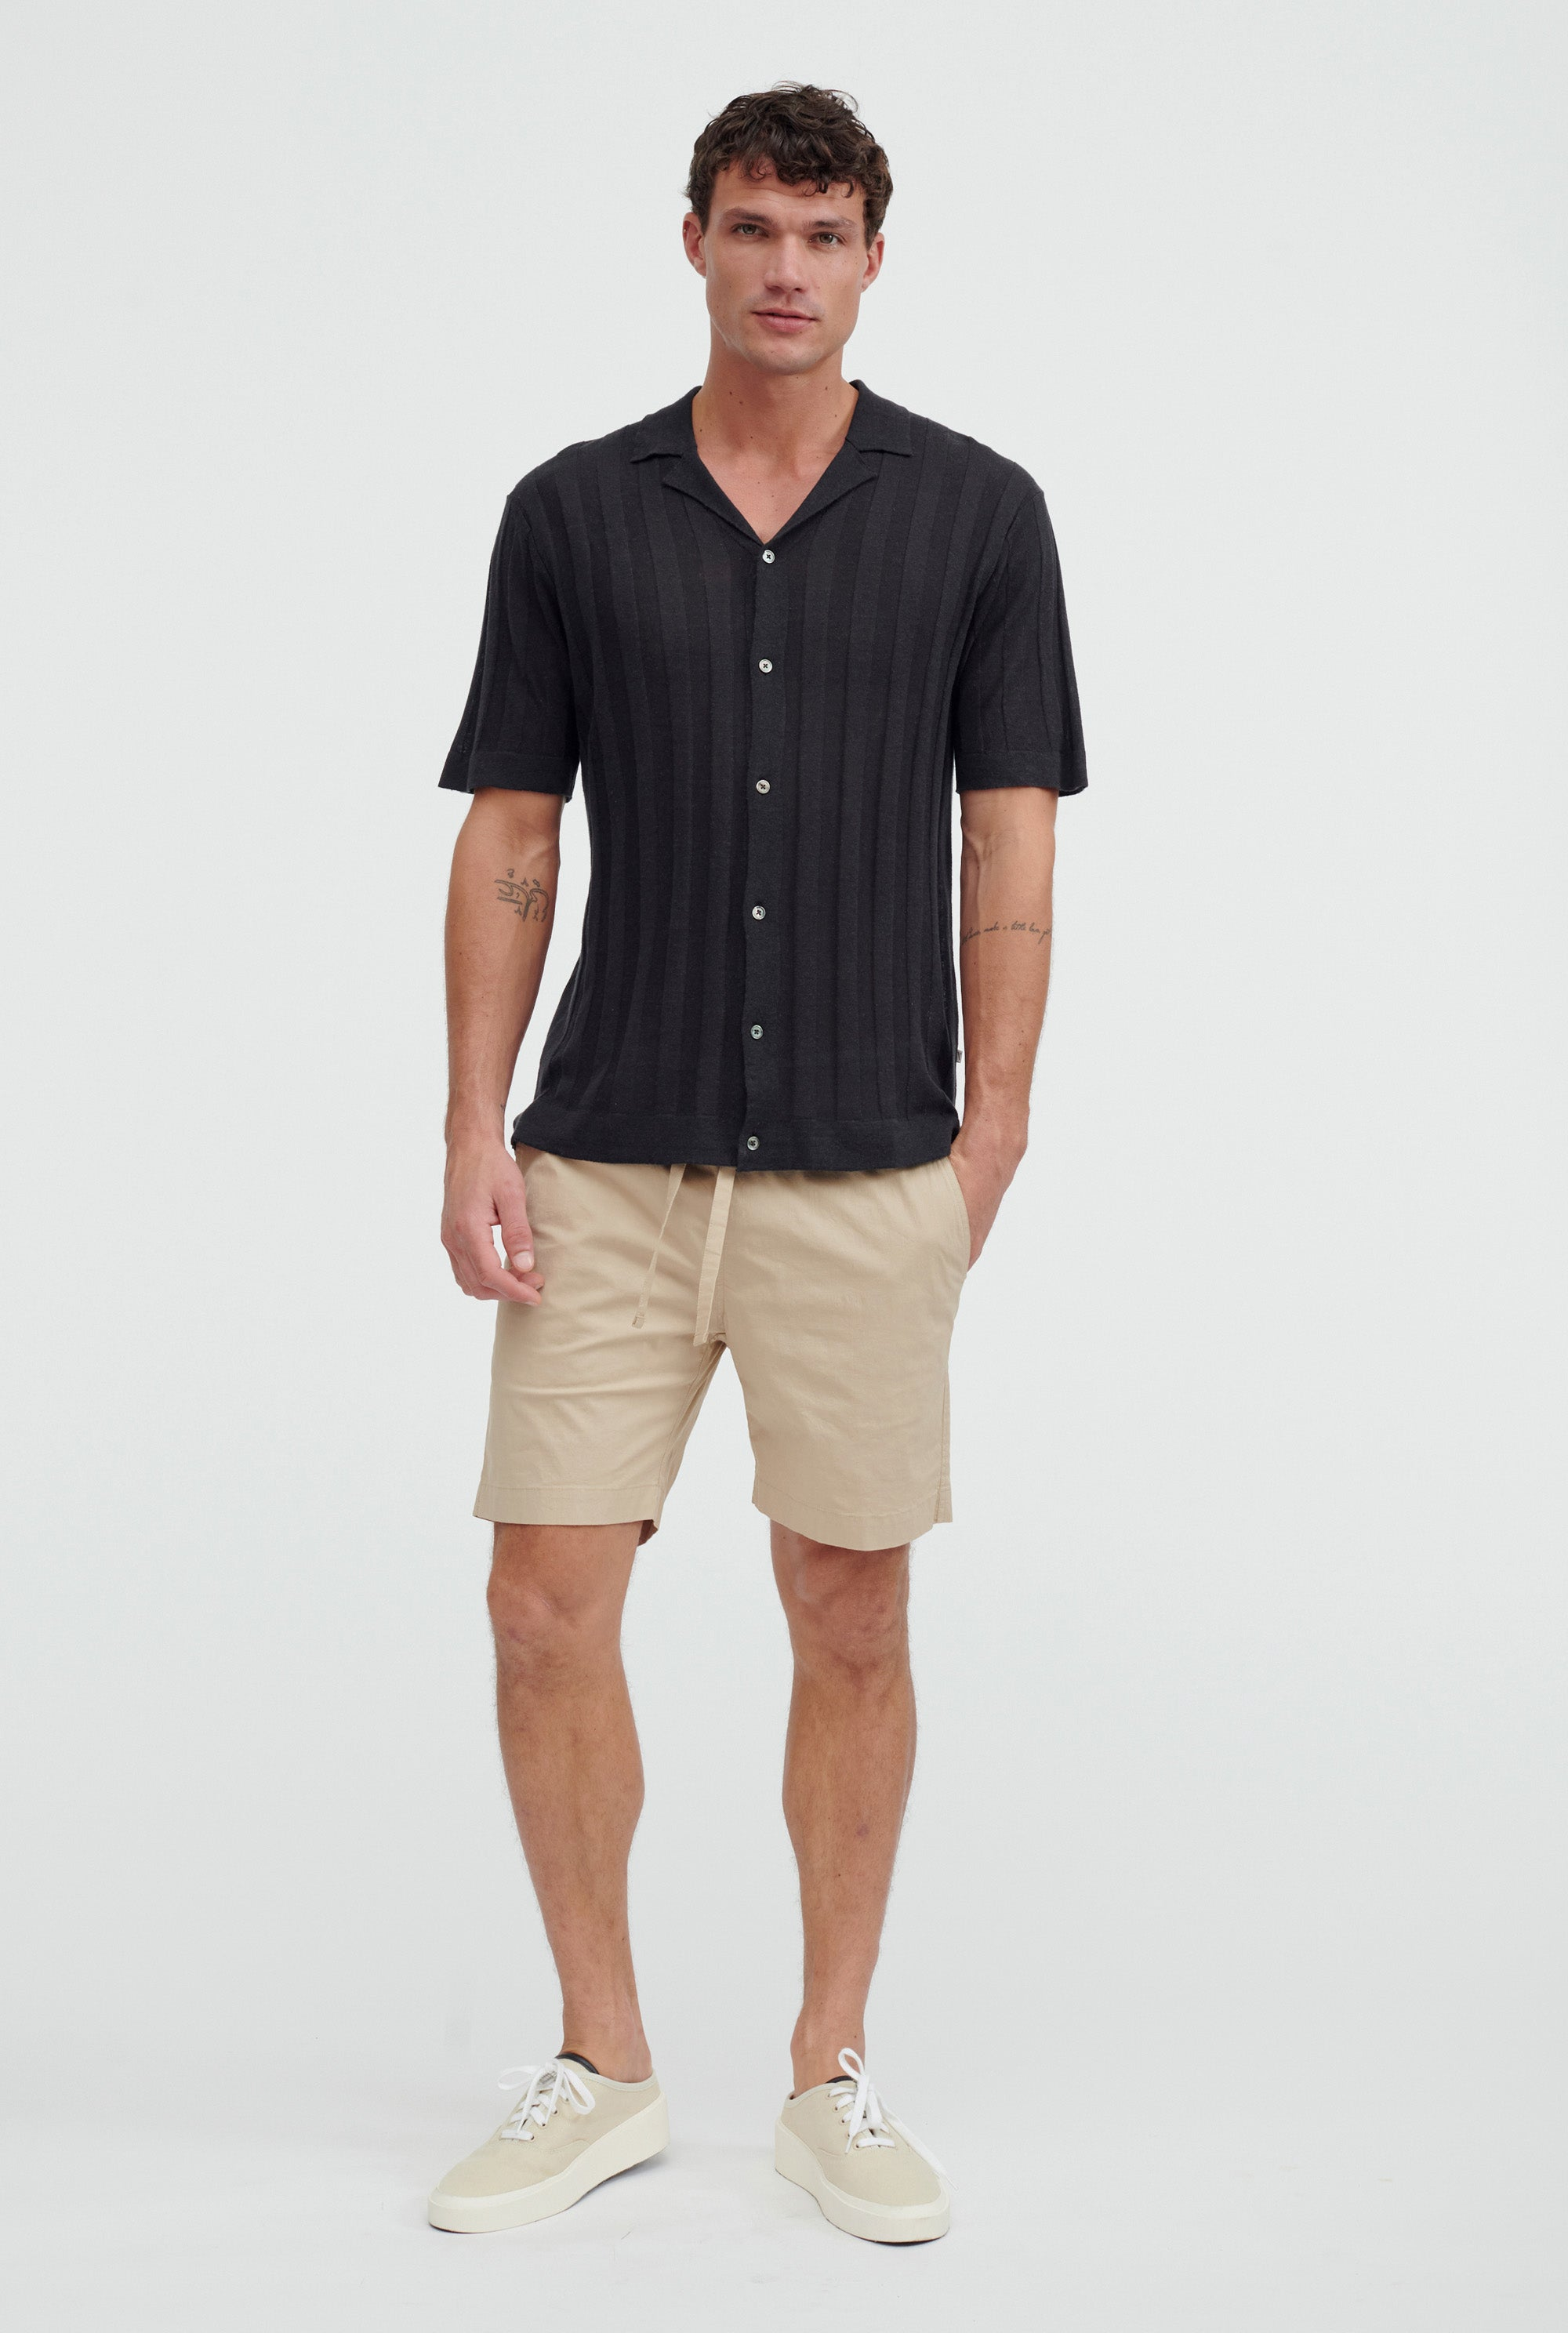 Short Sleeve Knitted Rib Stripe Shirt - Black